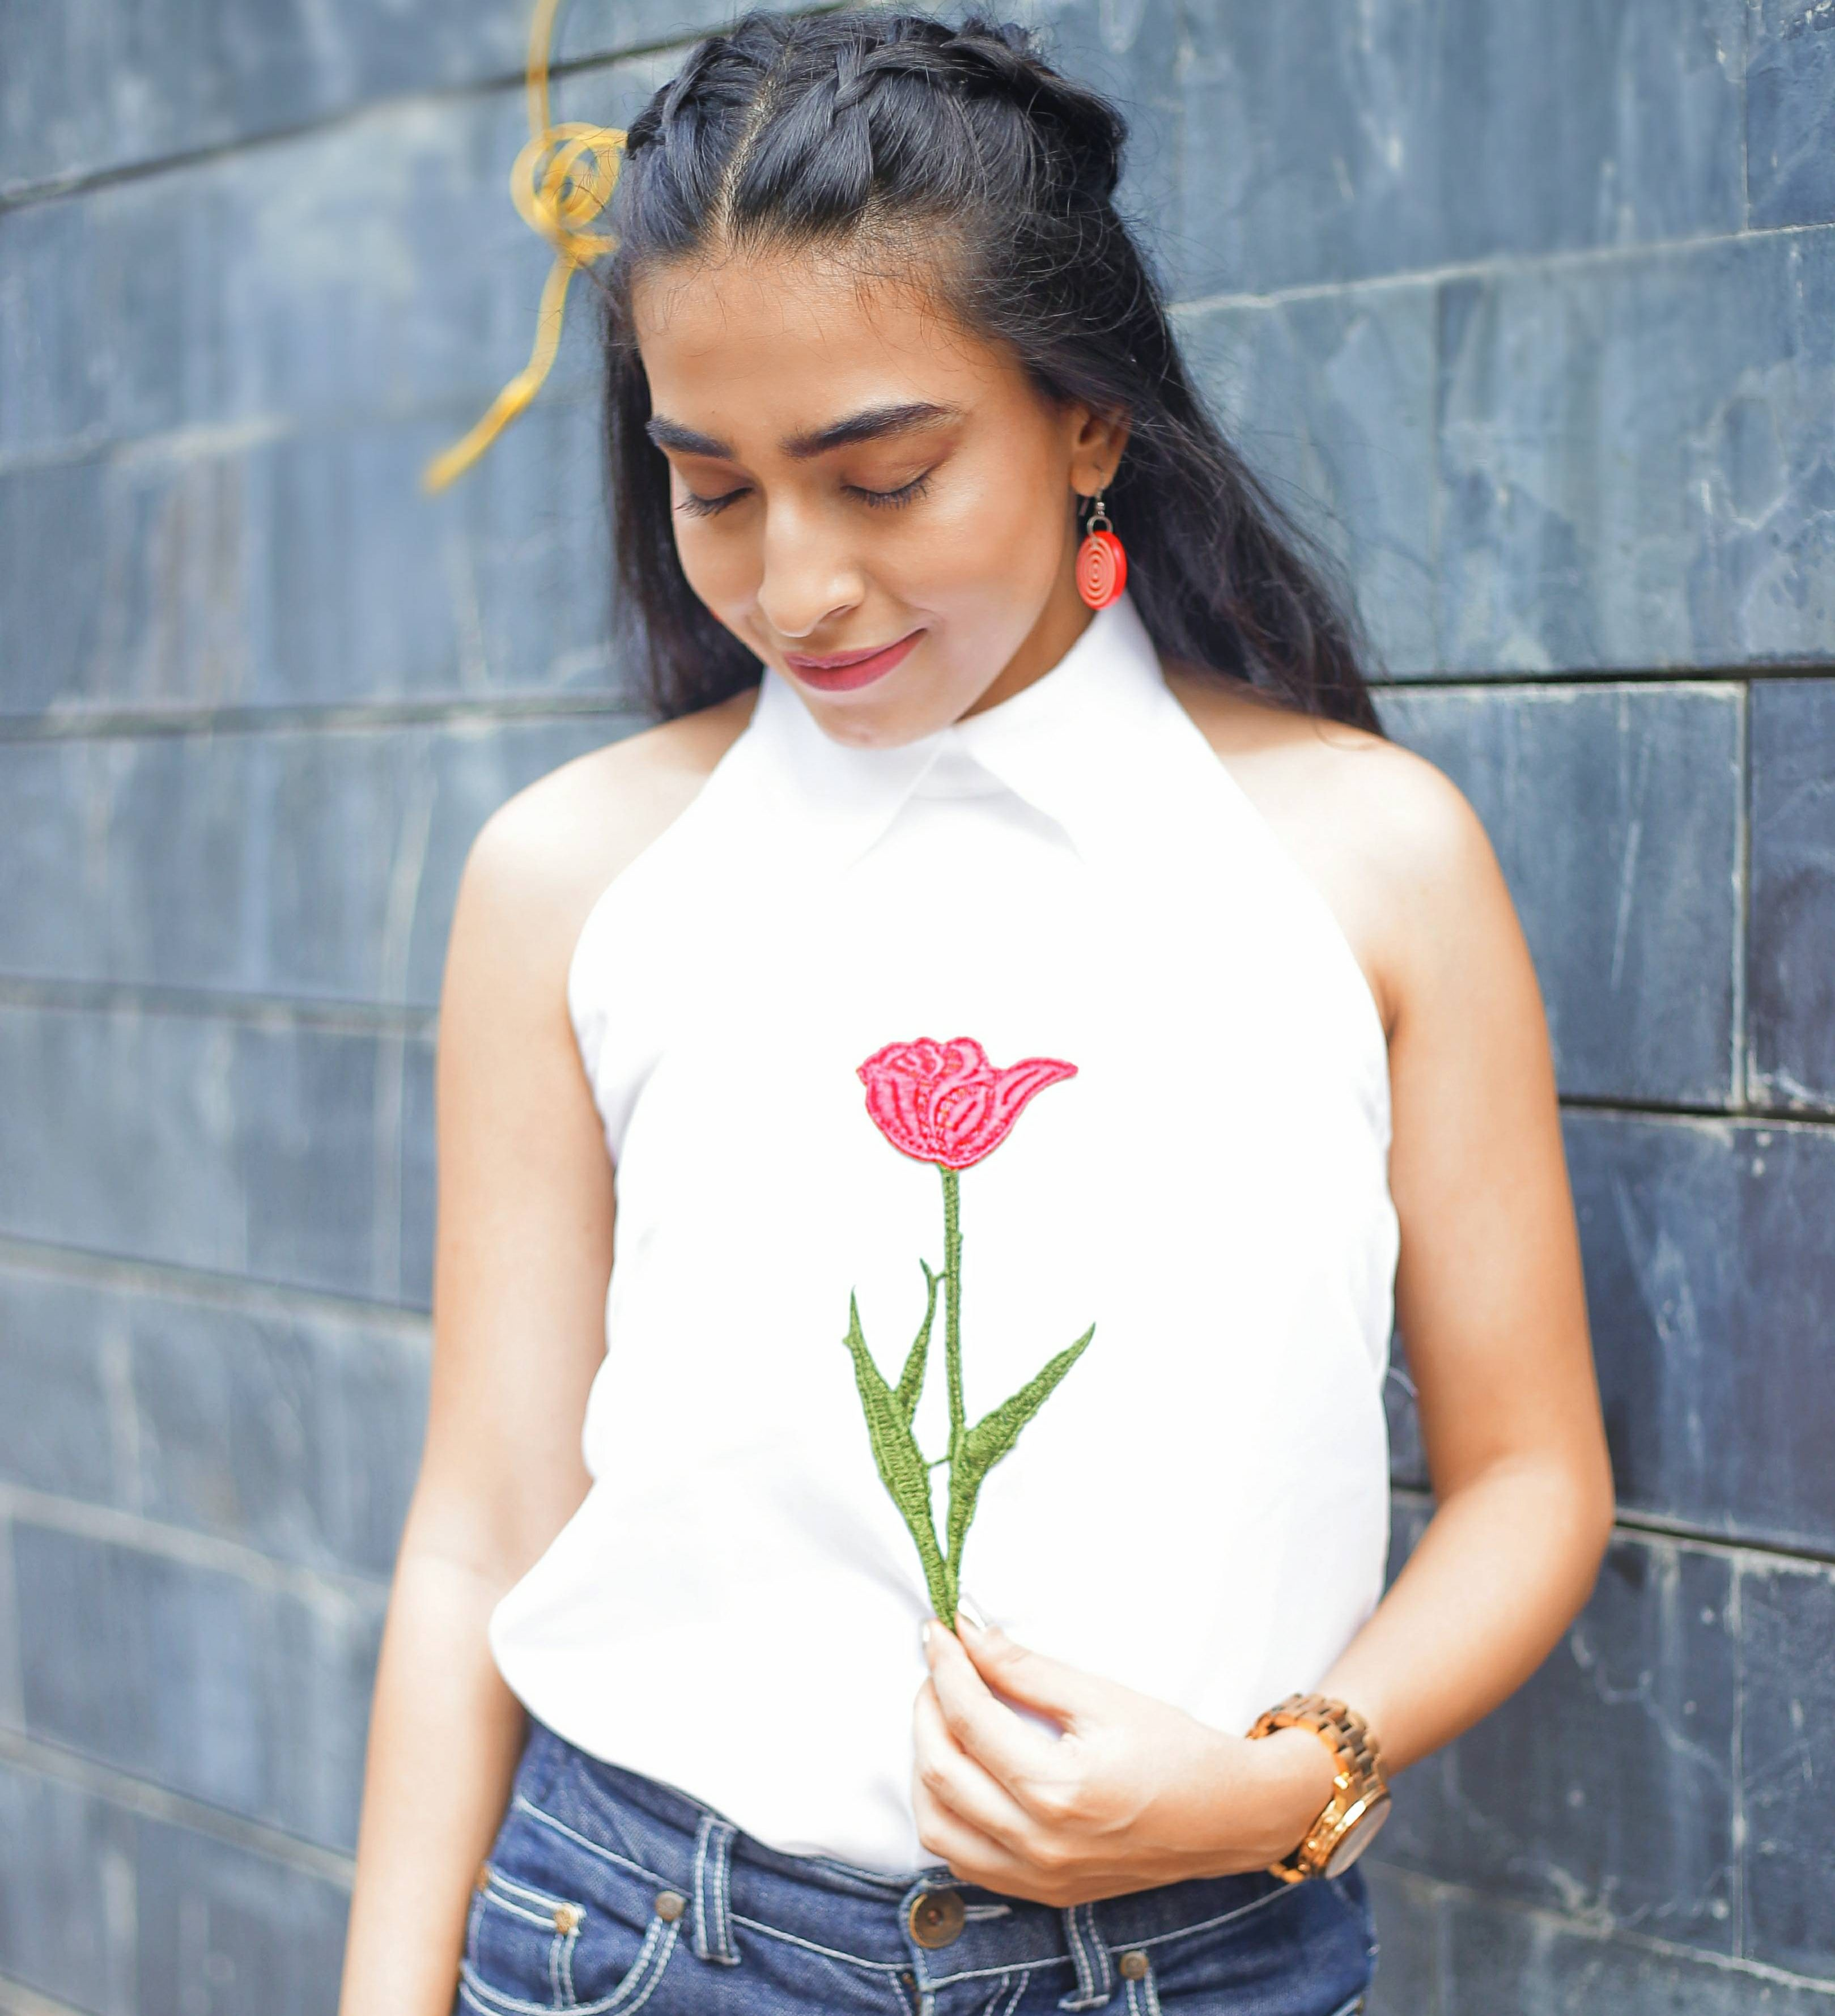 rose embroidery, floral embroidery, floral style, graphic tee, denim style, raw denims, halter top, white top, white shirt with denims, summer style, casual style